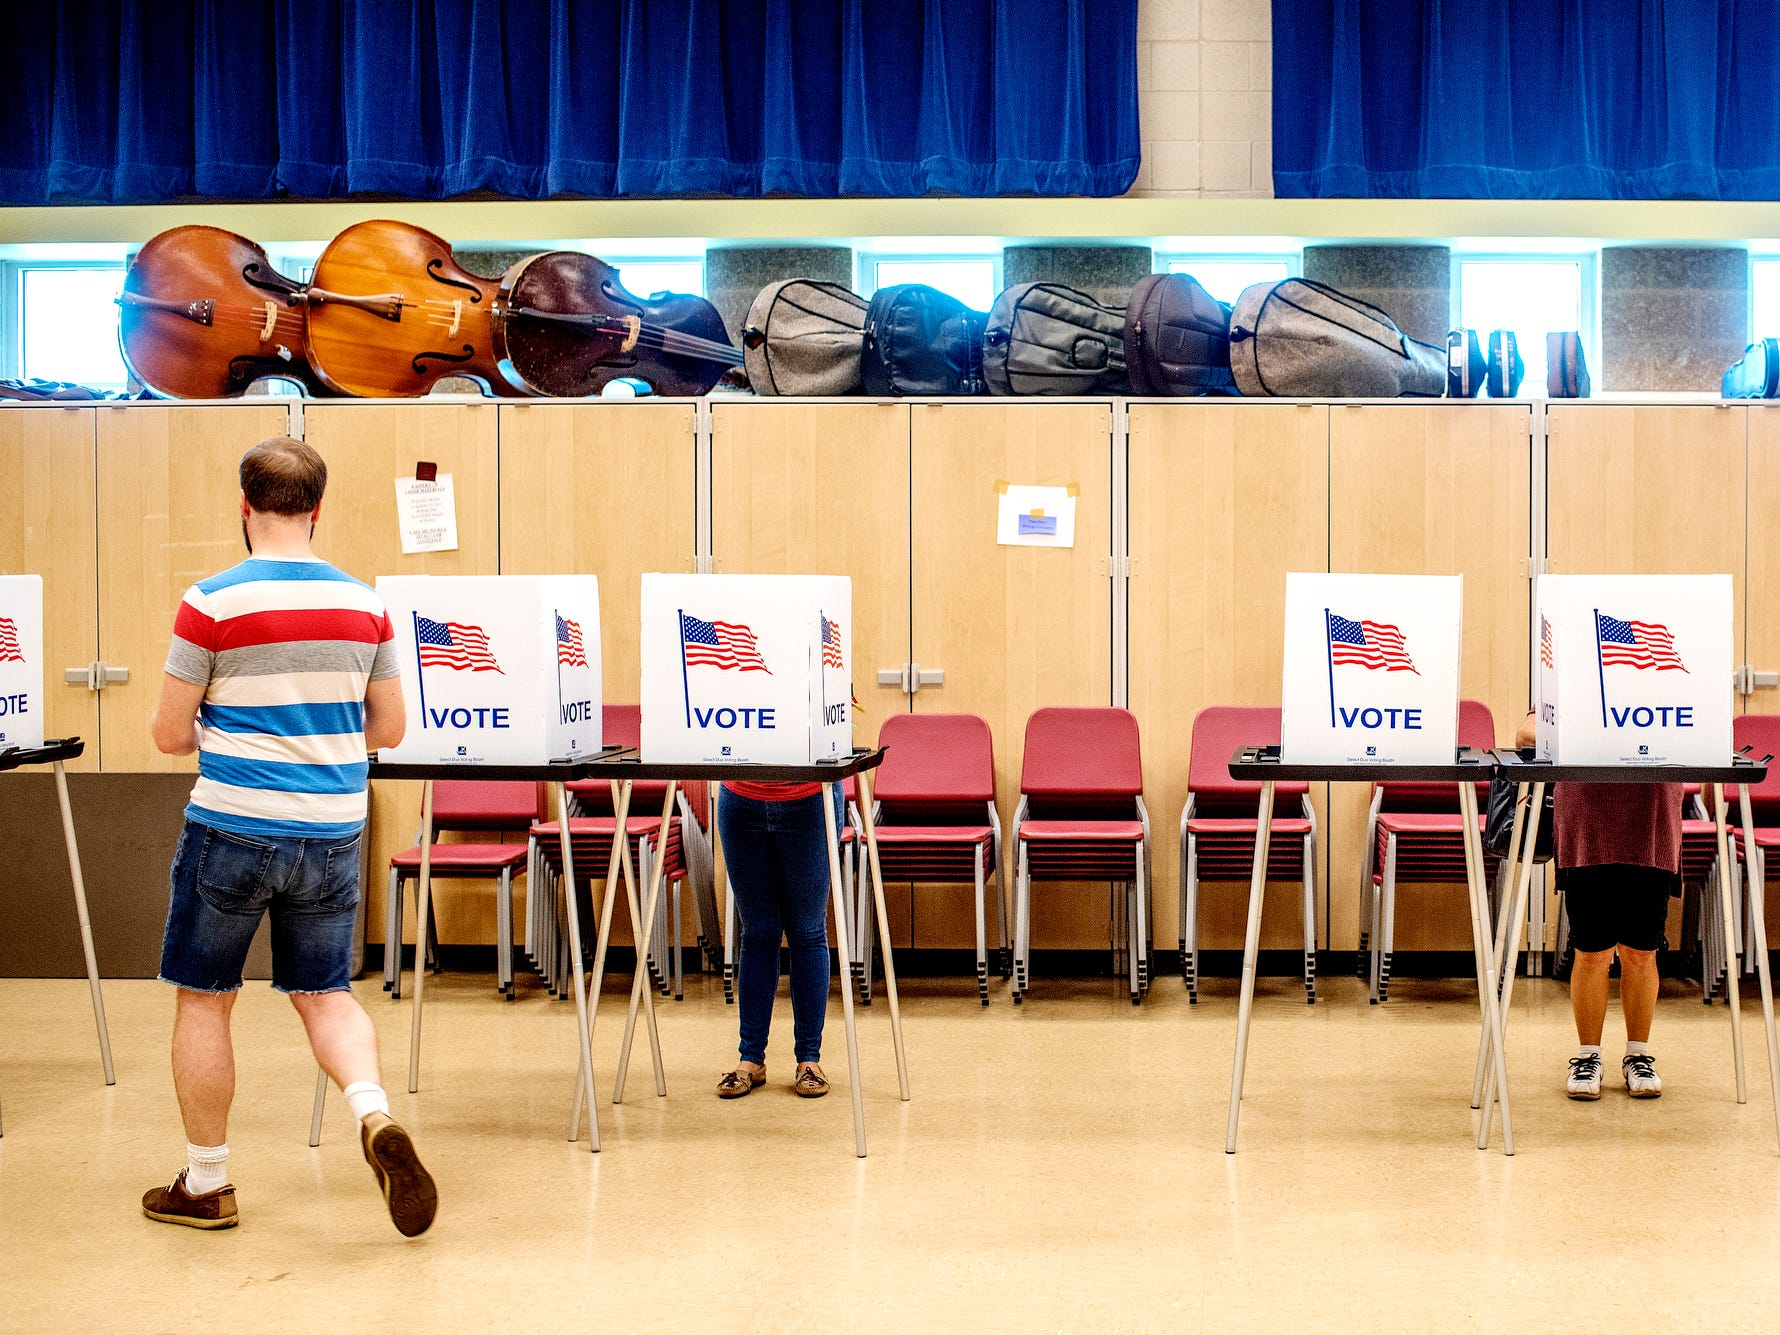 Voters fill out their ballots at a polling place in the band room at Pattengill School on Tuesday, Aug. 7, 2018, in Lansing.